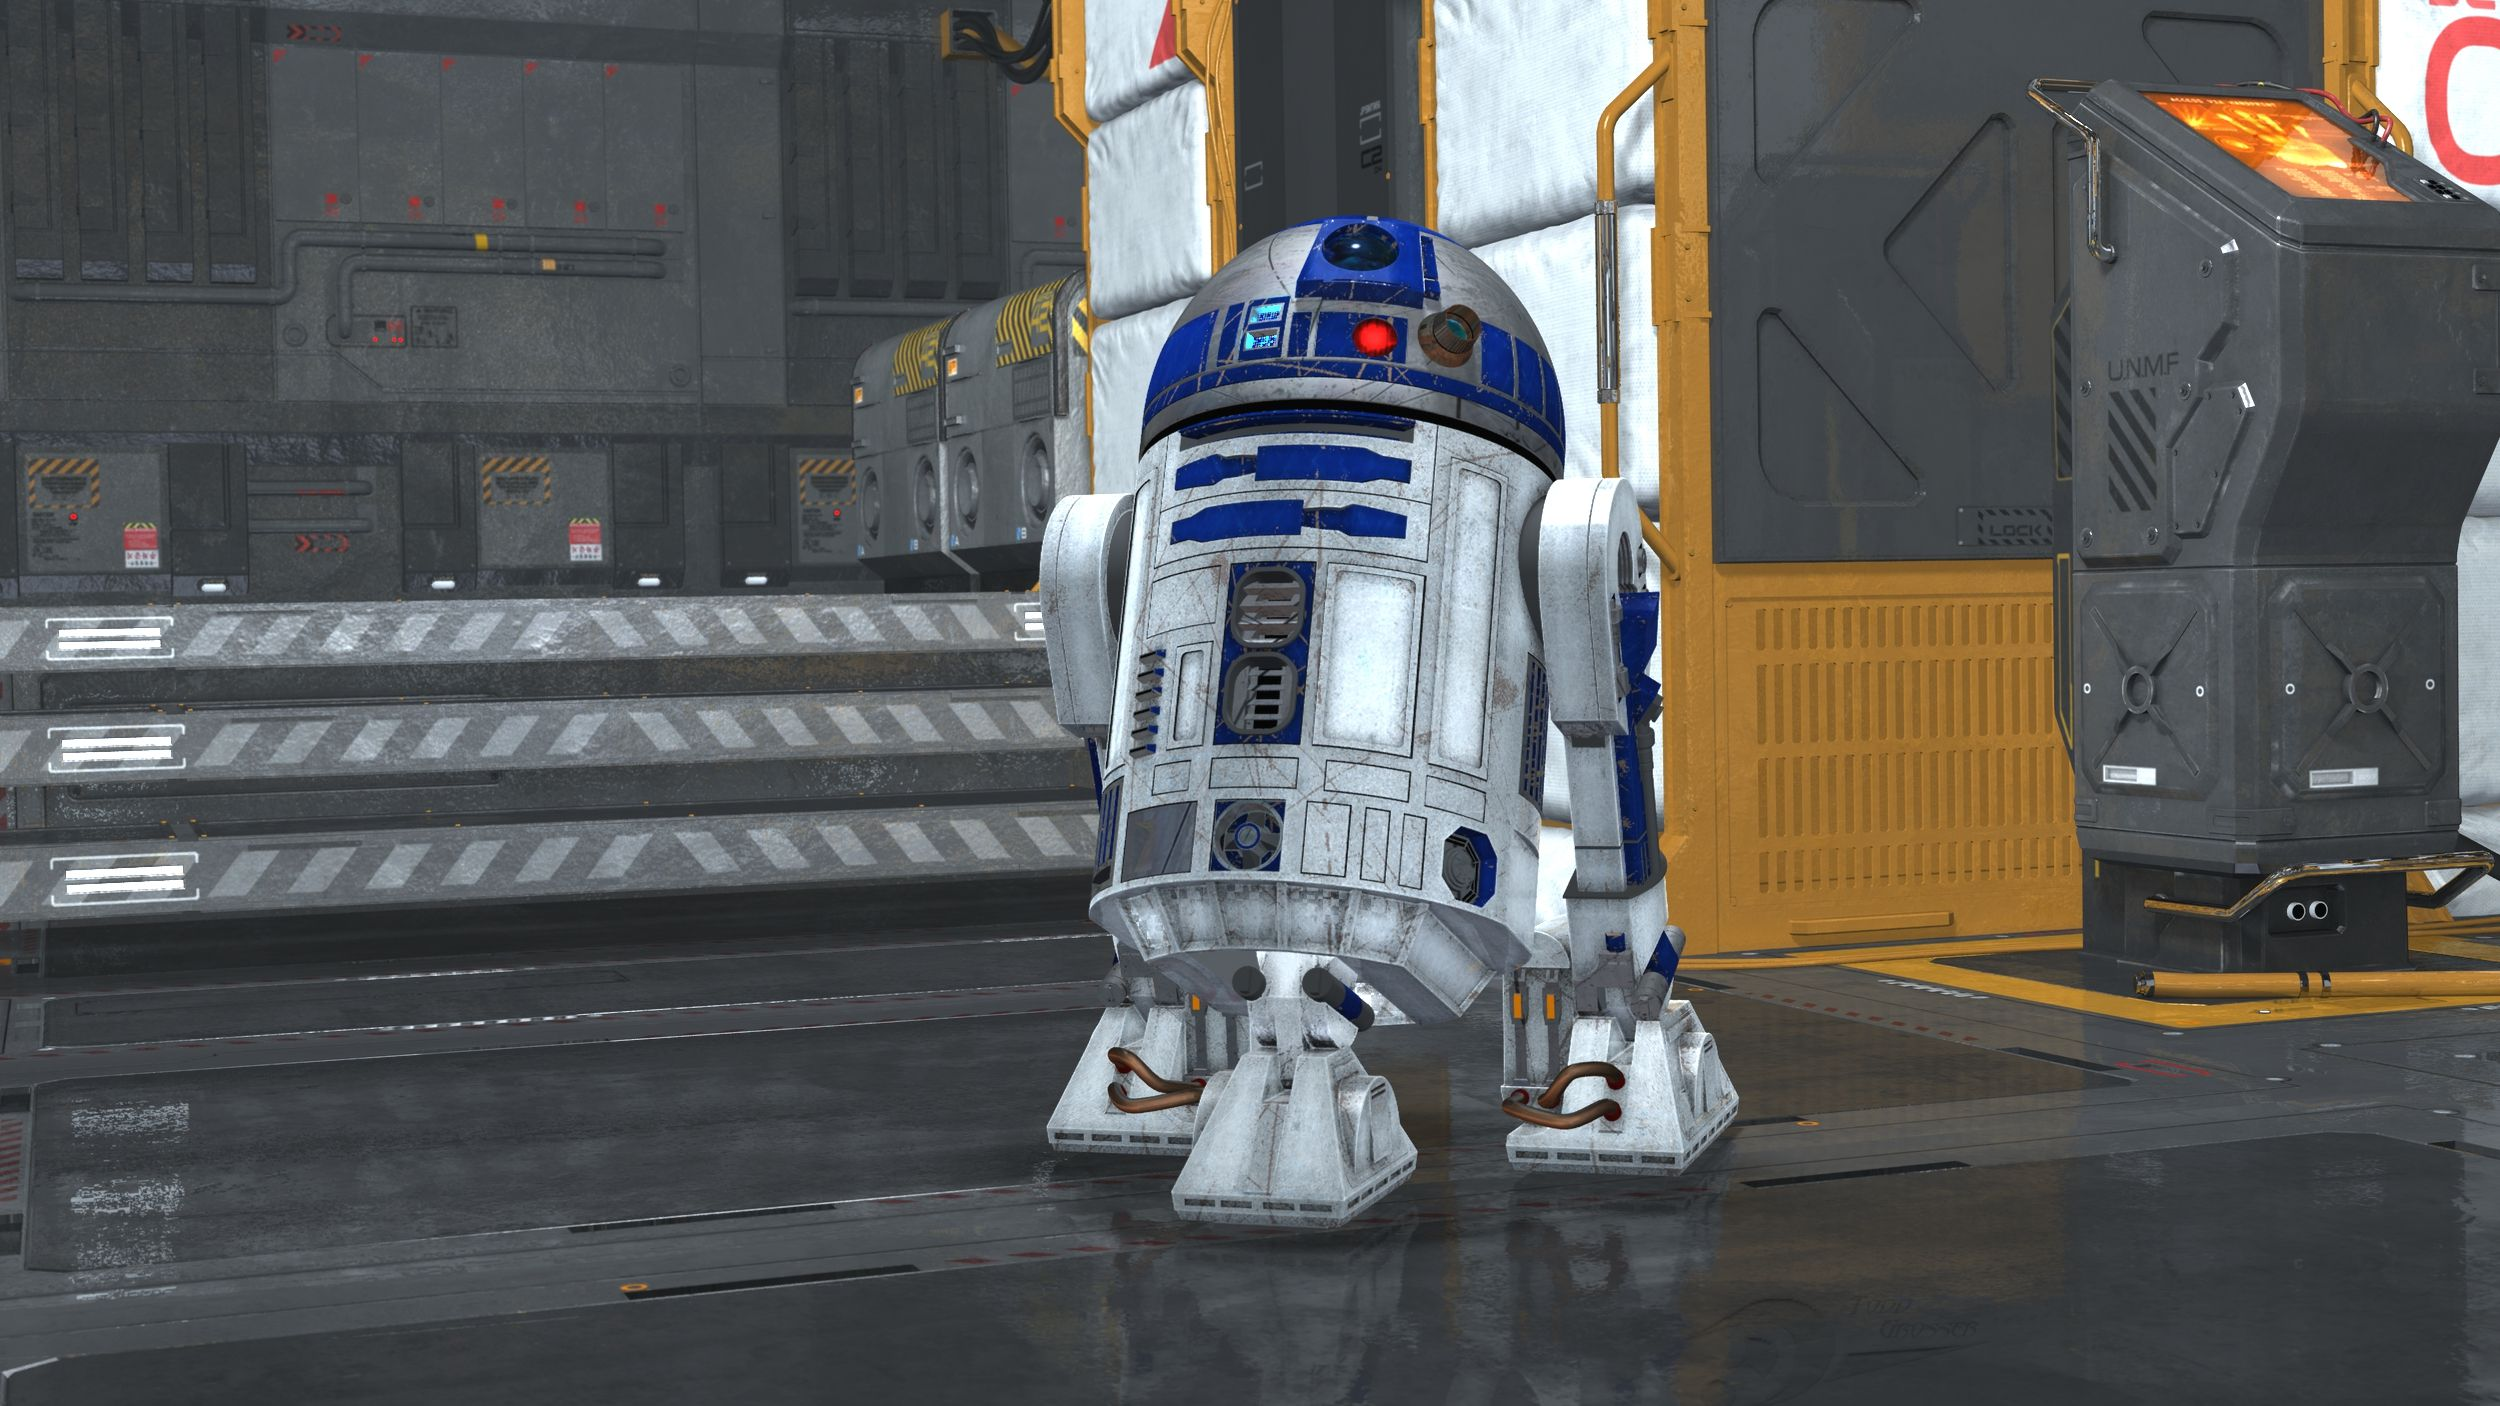 Because R2-D2 that's why